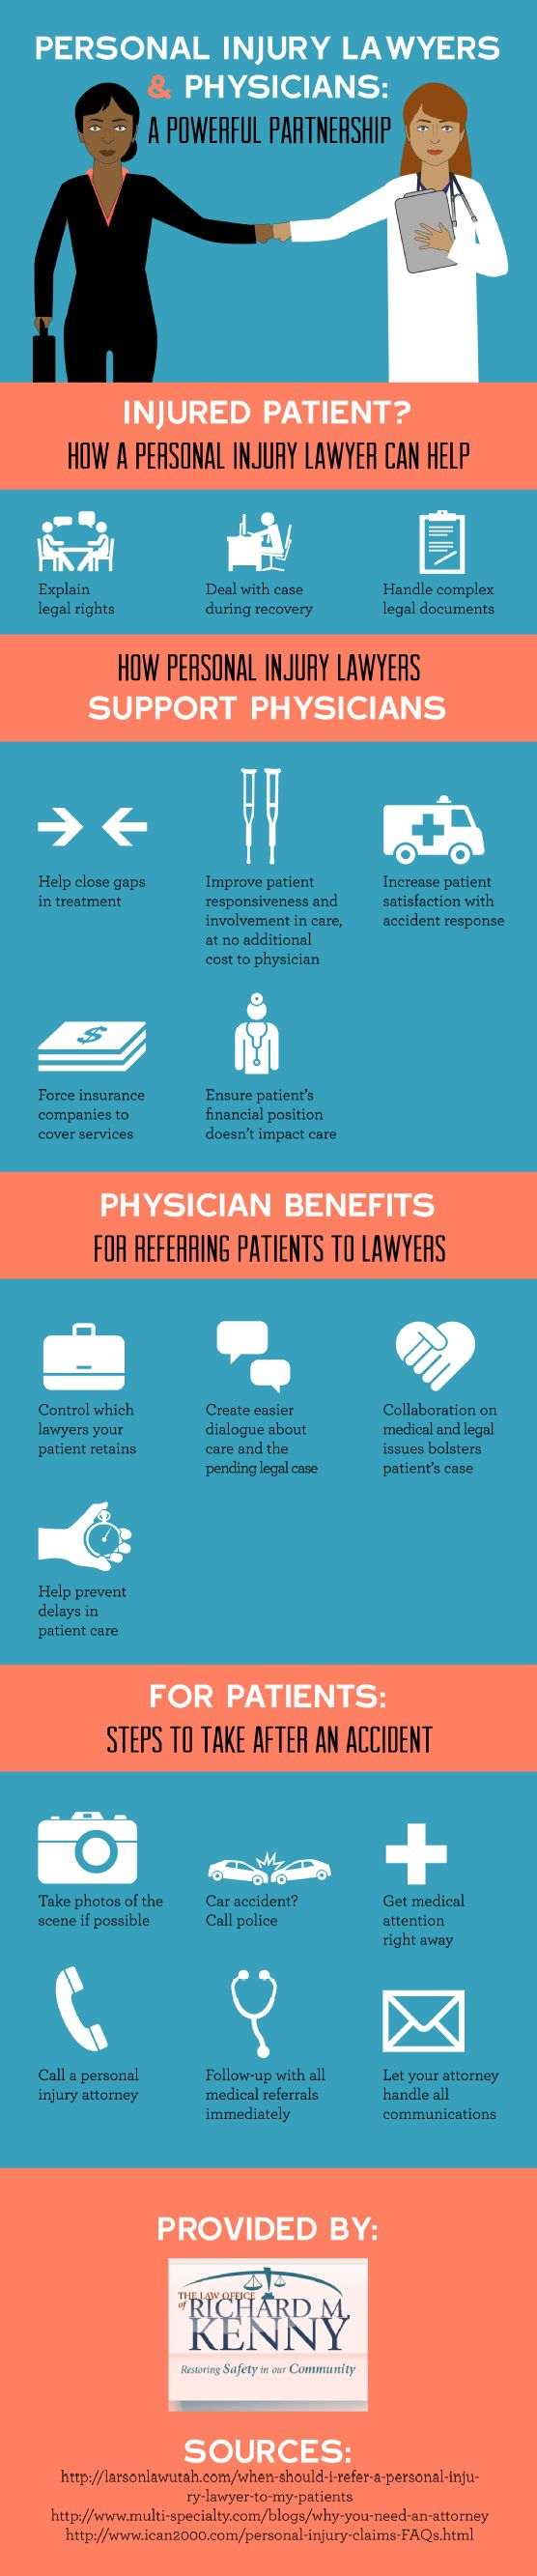 Physicians Who Refer Their Patients To Lawyer Can Collaborate On Medical And Legal Issues To Bolster